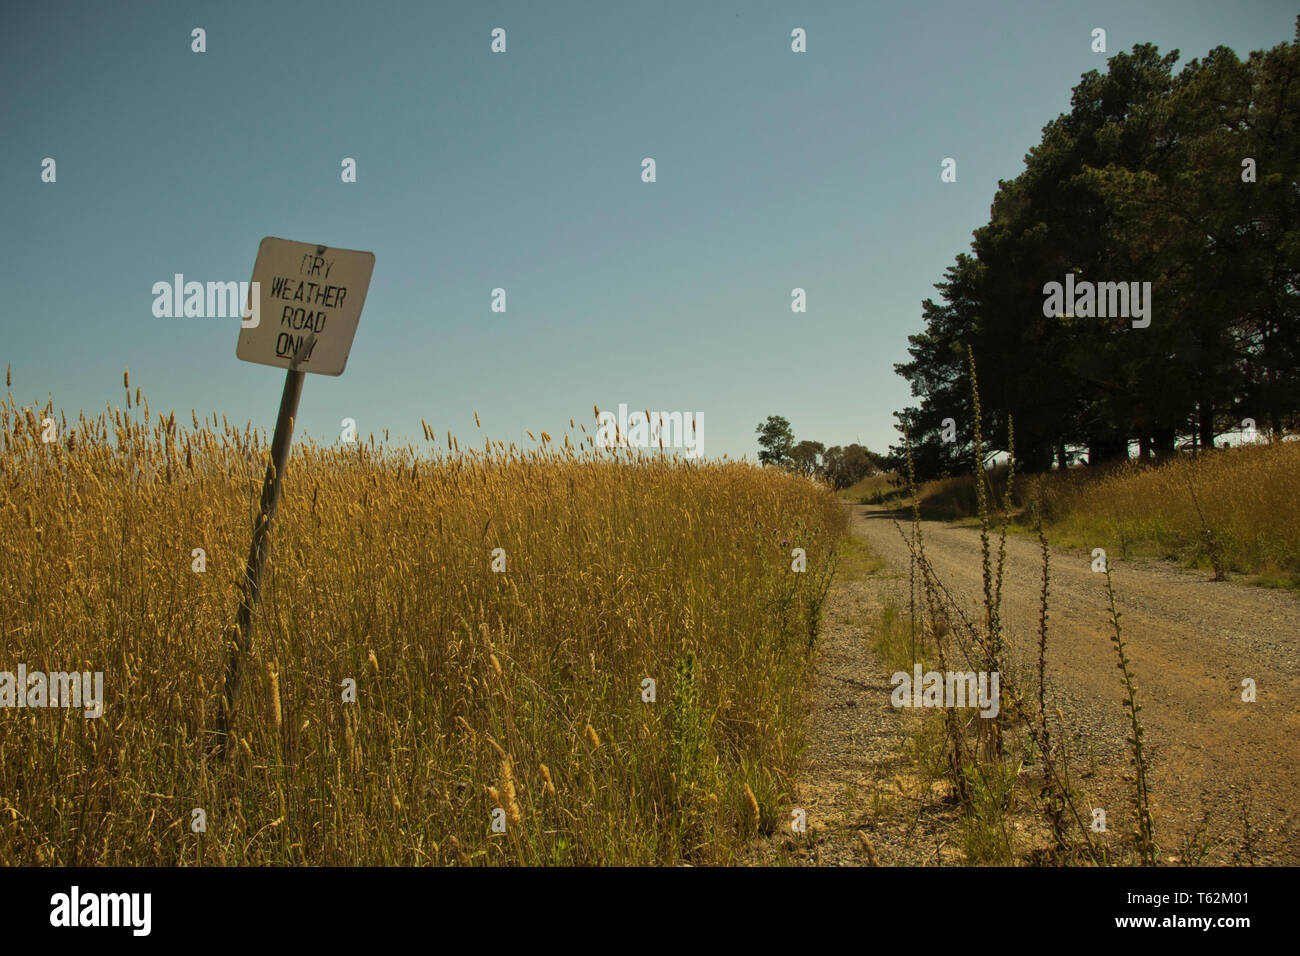 Dry weather road sign on country dirt road - Stock Image